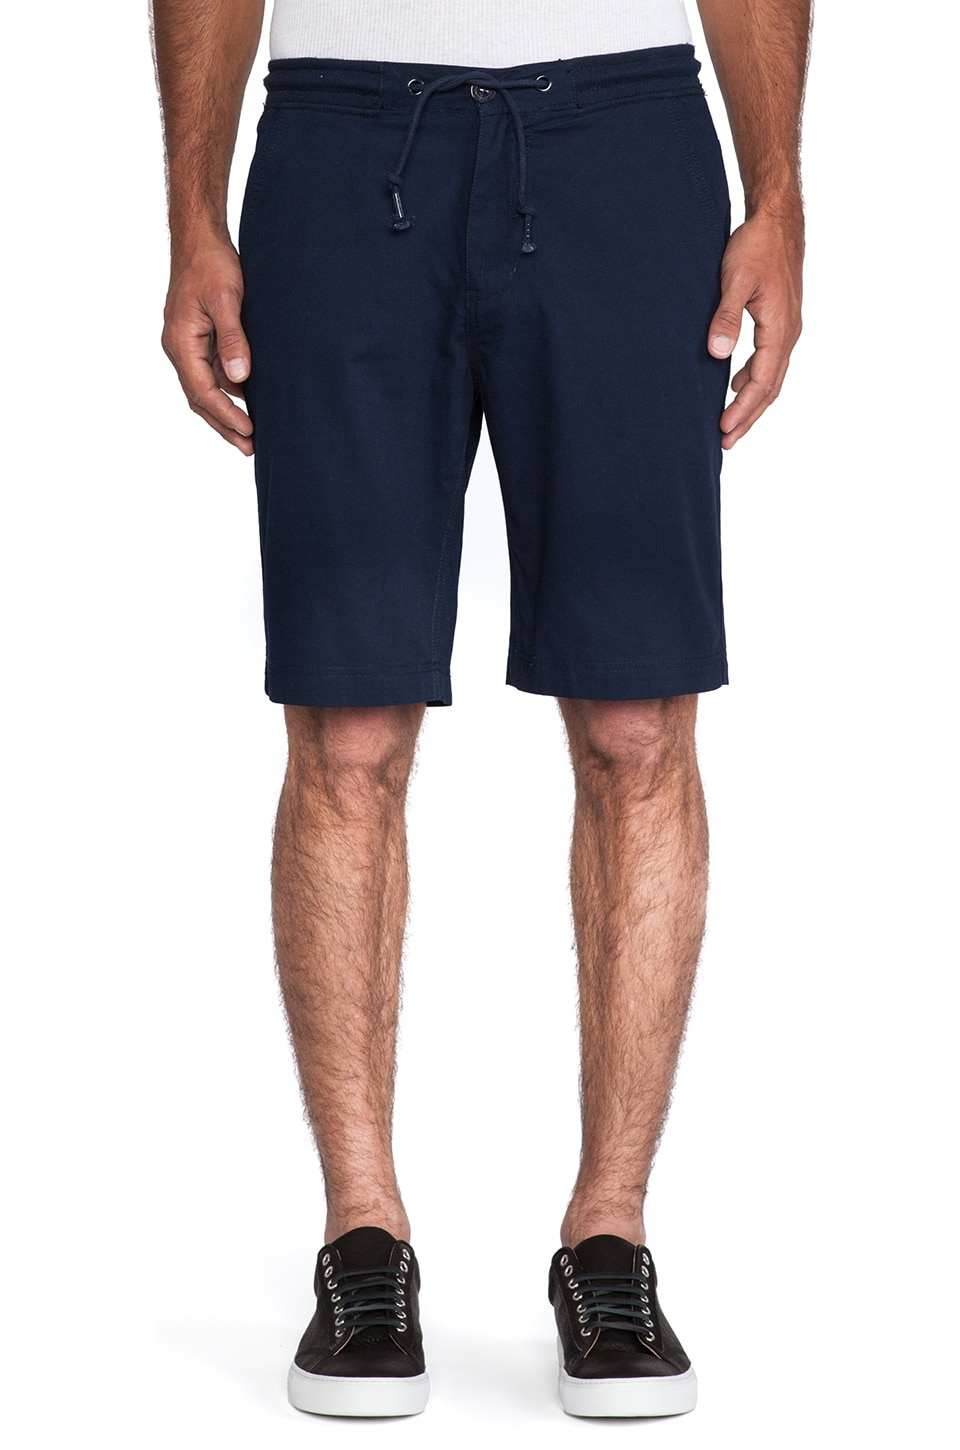 Staple Dobby Basic Short in Navy